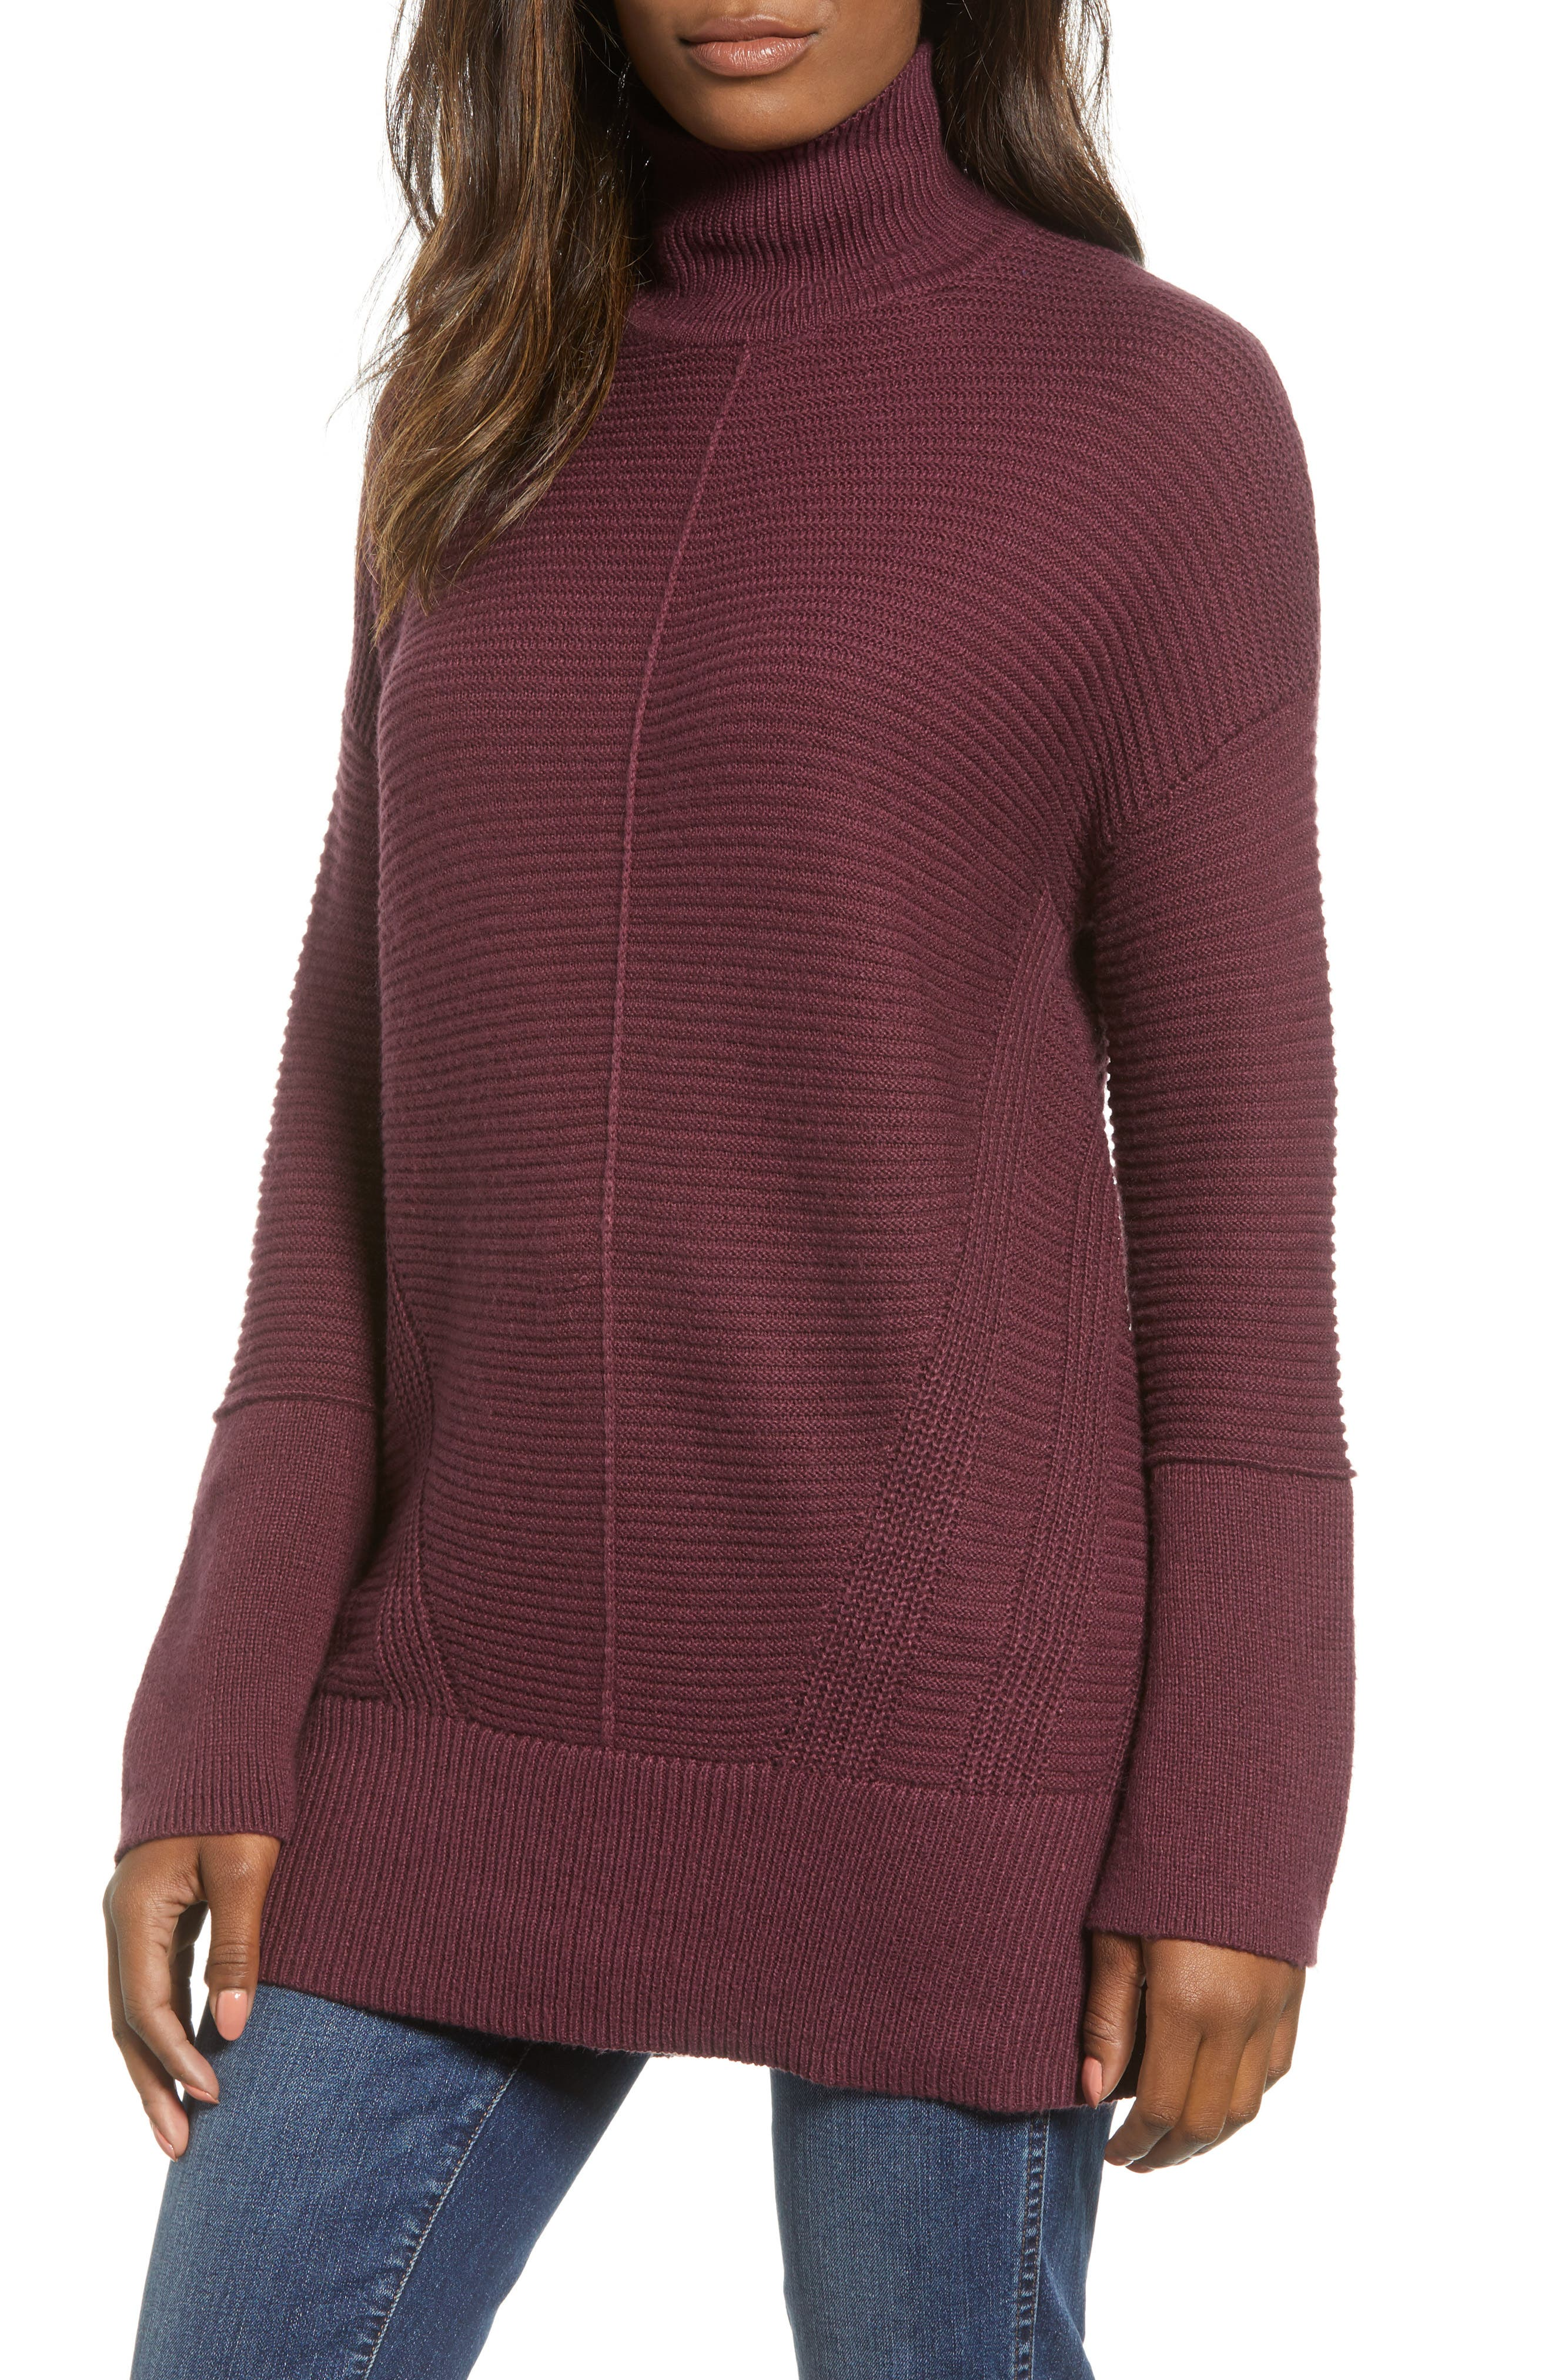 Ribbed Turtleneck Tunic Sweater,                             Main thumbnail 1, color,                             930